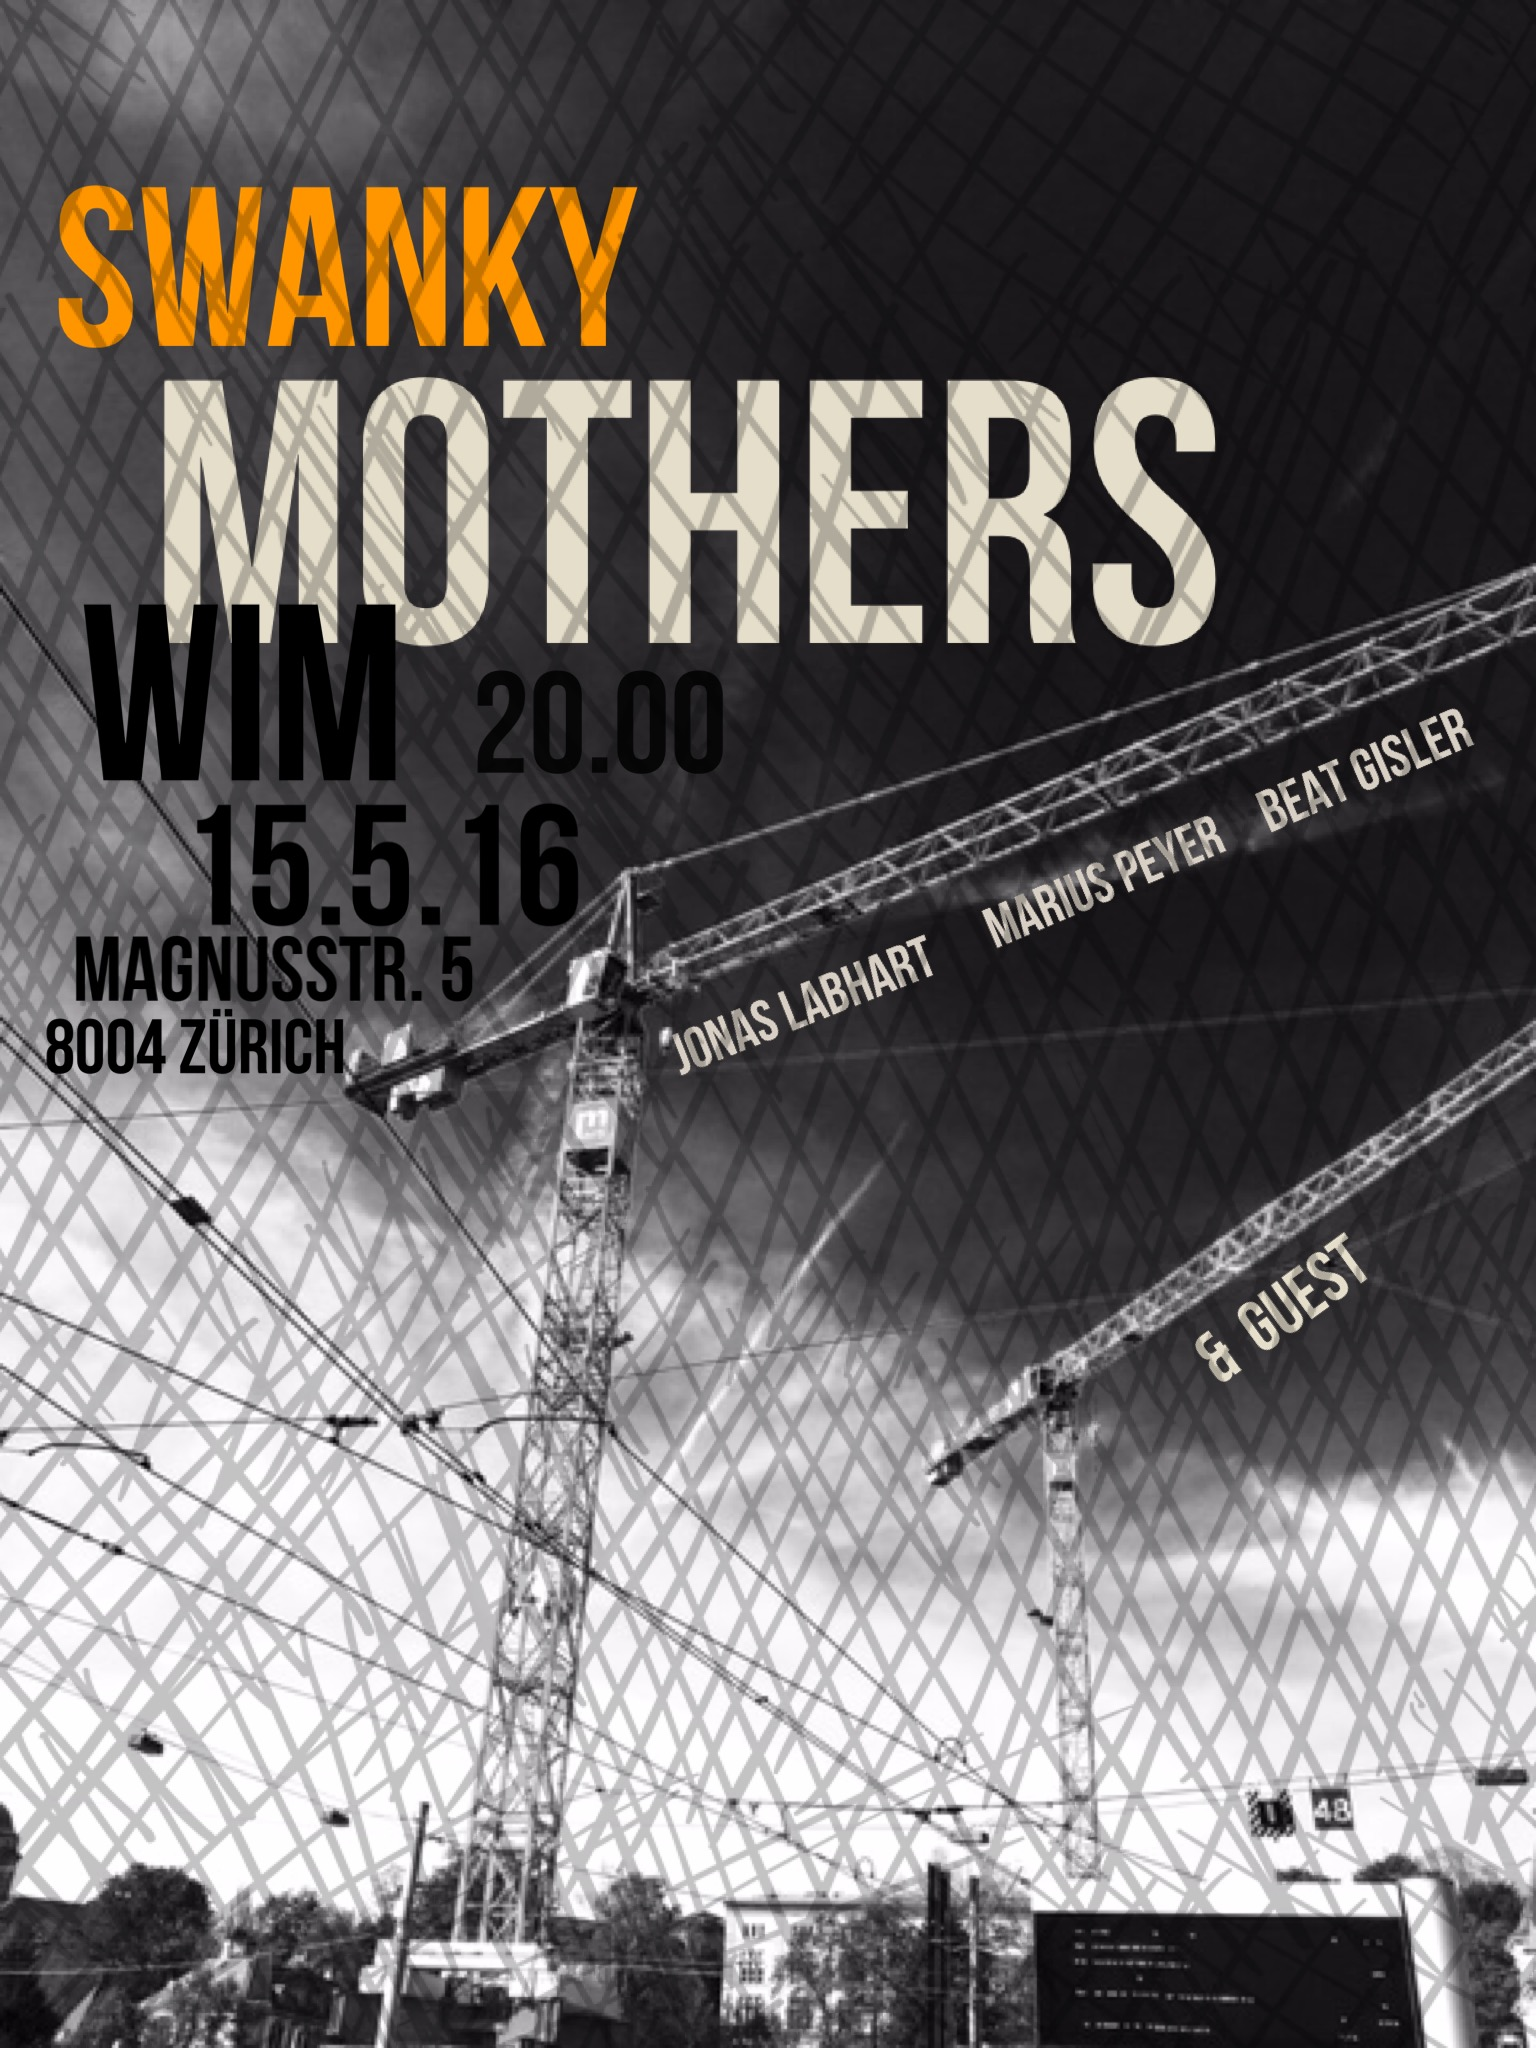 Swanky Mothers feat. Lucca Fries (pno)